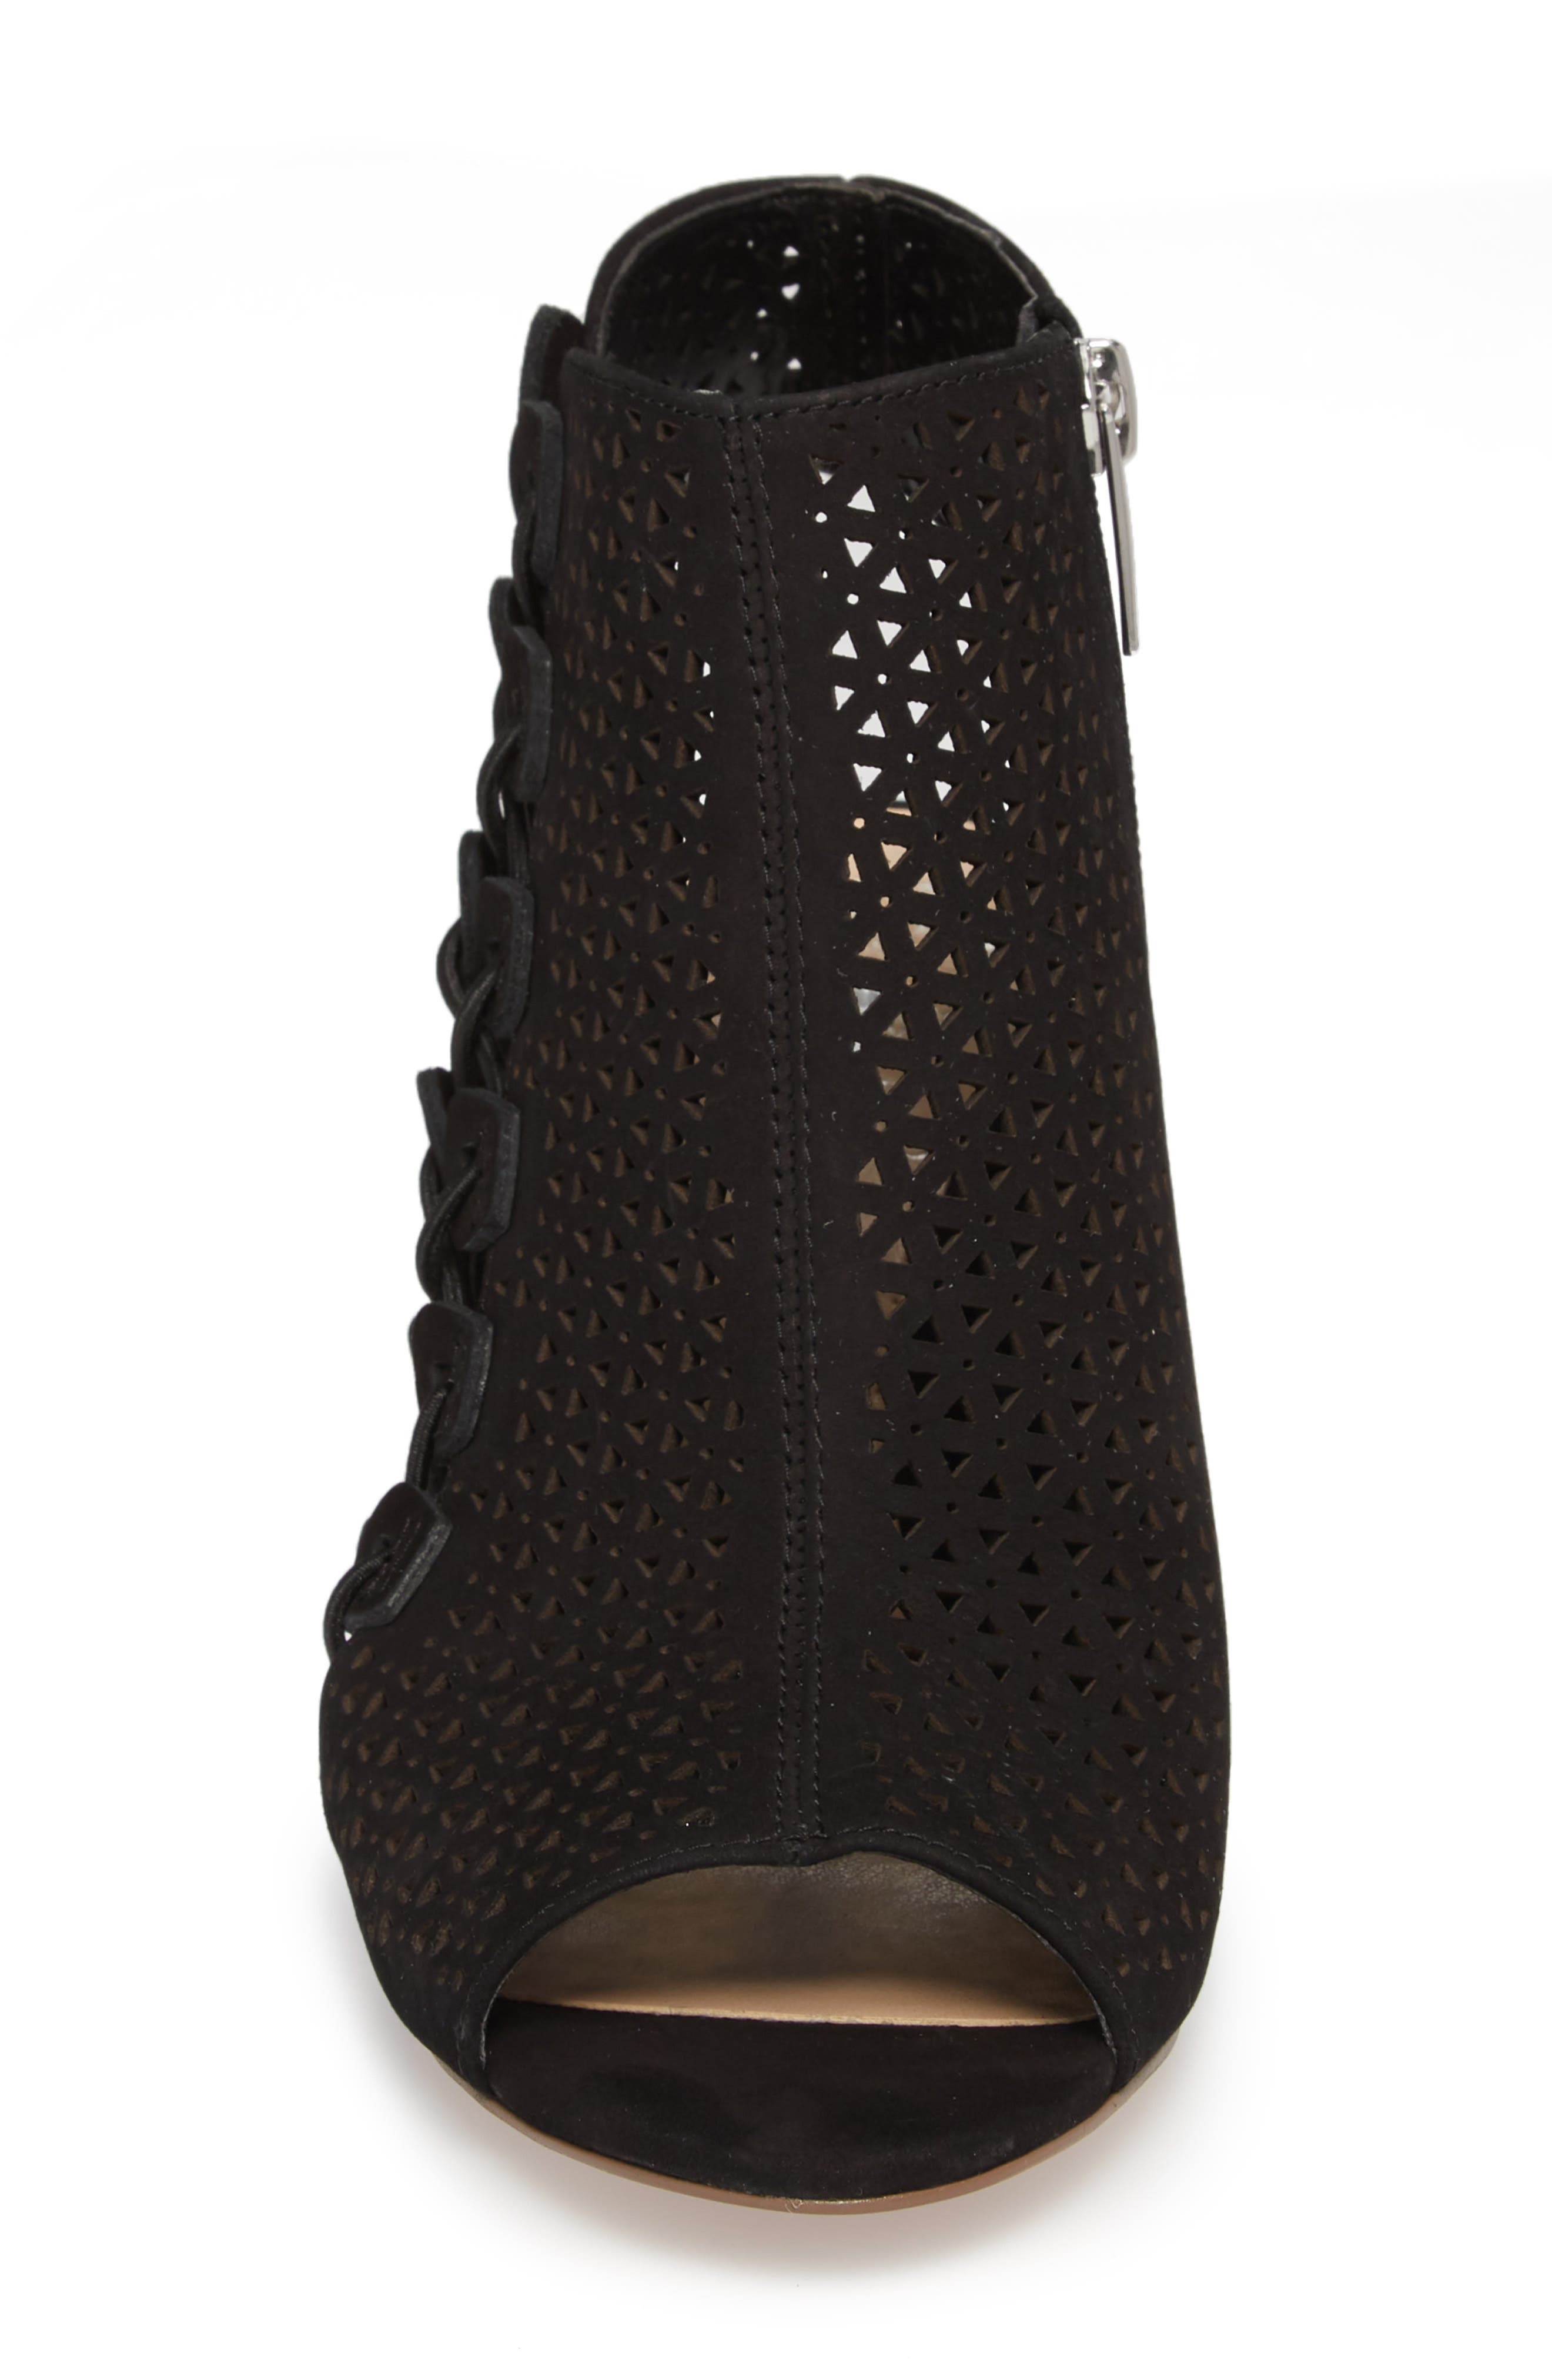 Elison Bootie,                             Alternate thumbnail 4, color,                             Black Leather